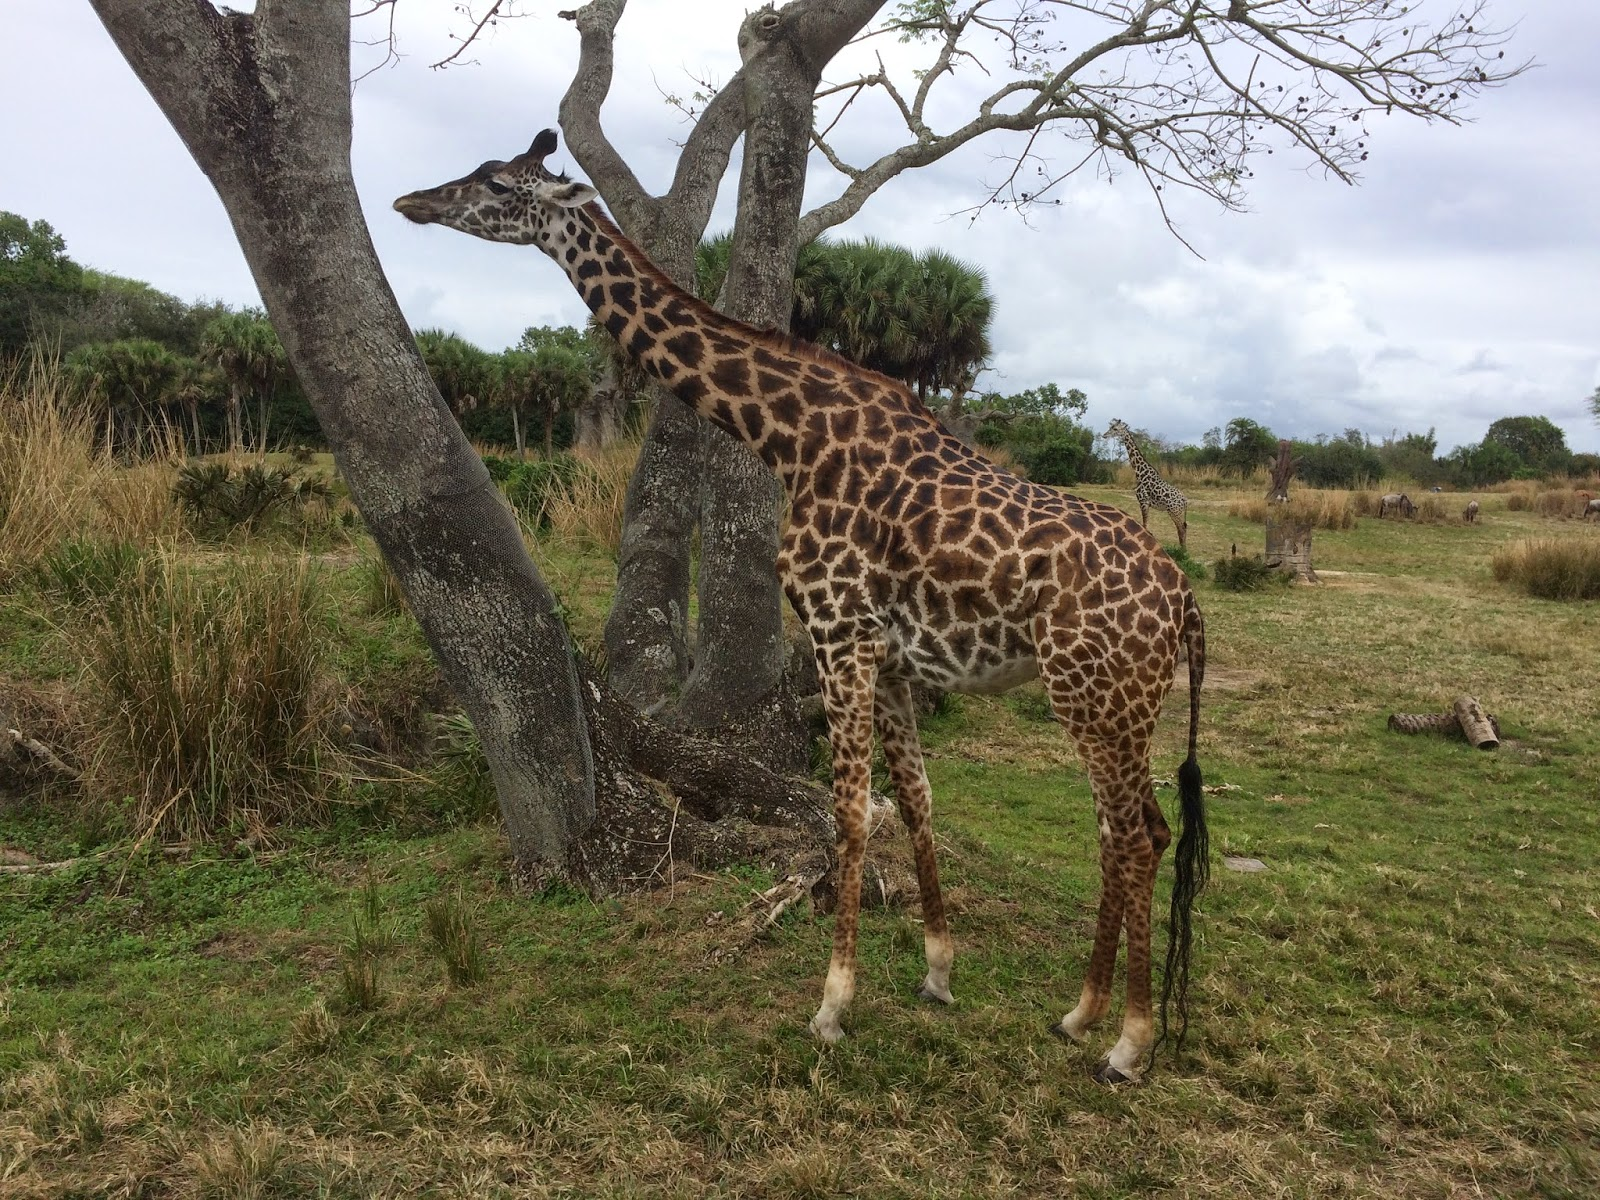 #ivysvariety giraffe at Animal Kingdom New Year's Resolution 2015